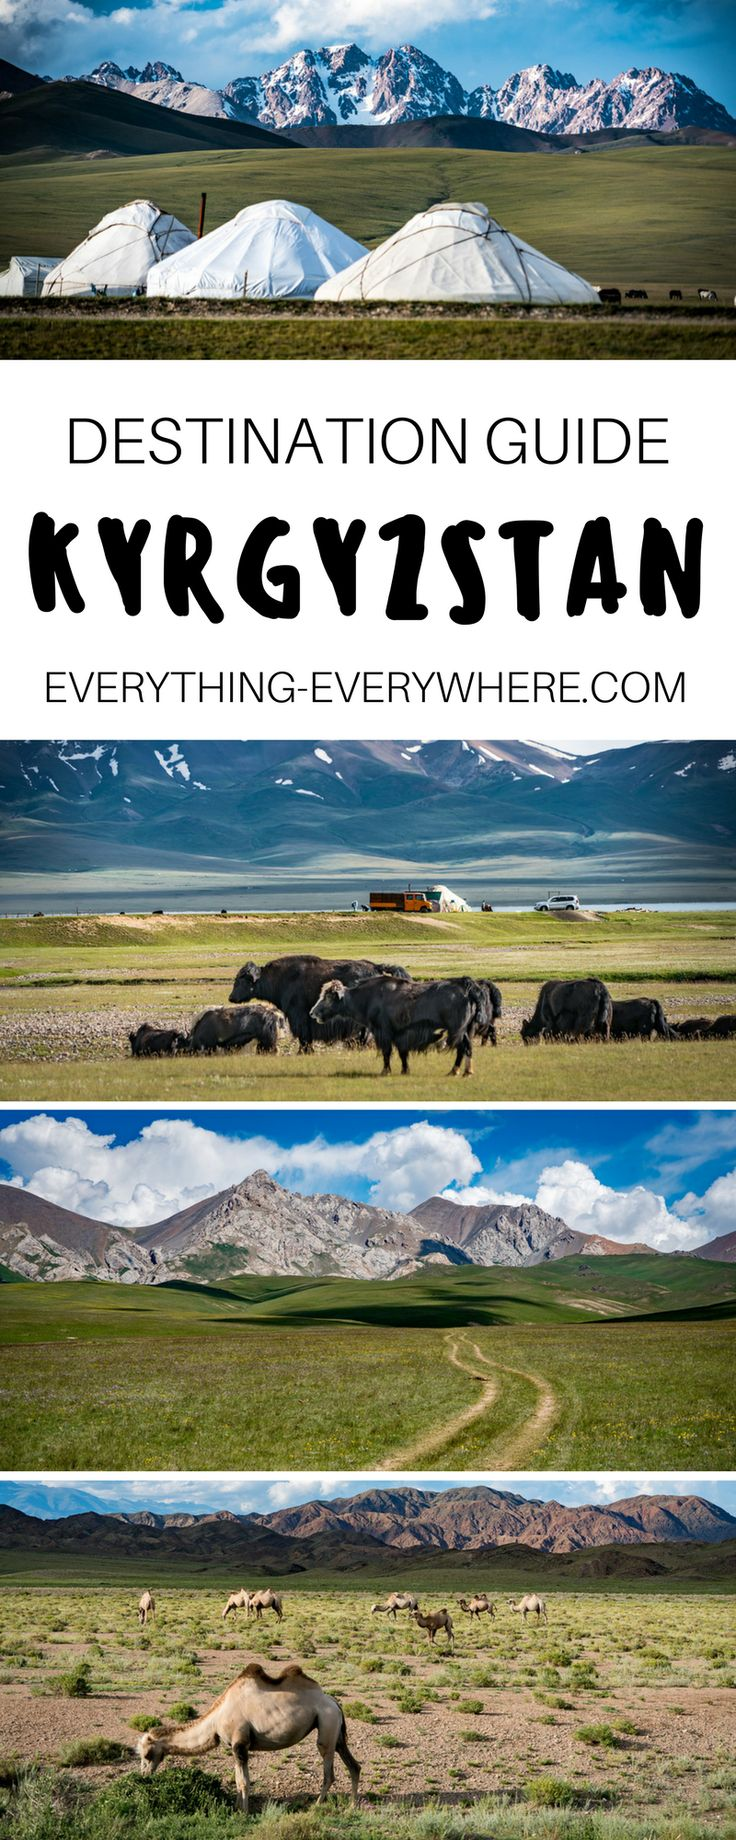 Kyrgyzstan is a Central Asian country that's bordered by China. Relatively unknown by travelers and untouched by tourism (for now), Kyrgyzstan is a great destination for those looking for an isolated and off-the-beaten path travel experience. Culturally diverse and home to beautiful mountains, lakes and scenery, Kyrgyzstan is also great for budget travelers as it provides incredible value for money. | Everything Everywhere Destination Guide #Kyrgyzstan #Asia